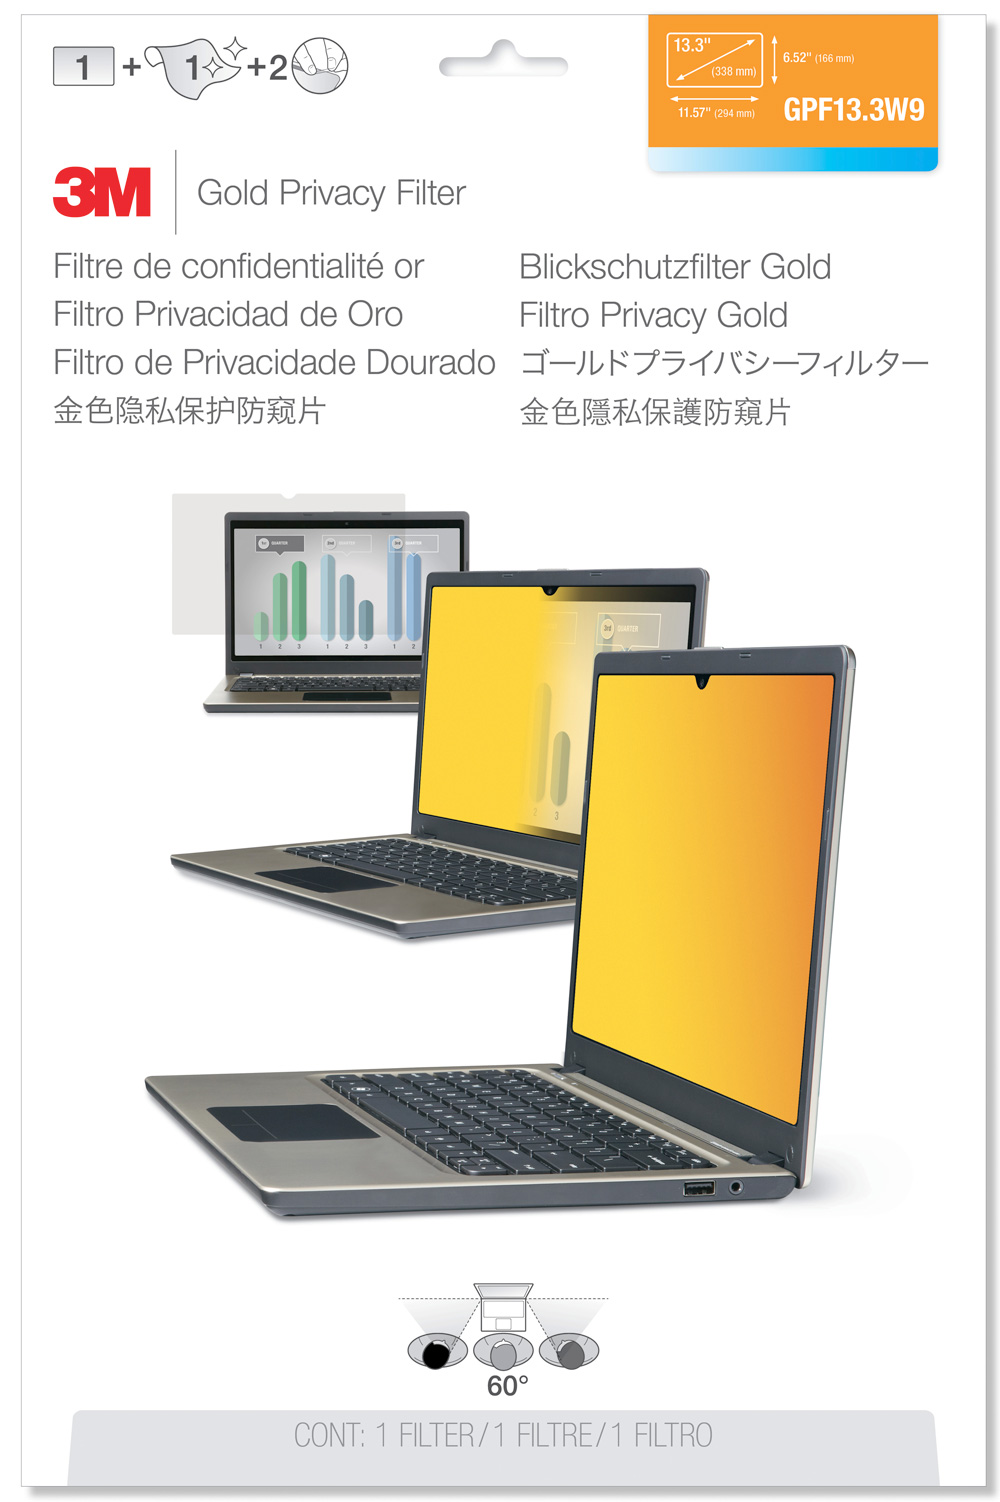 3M Laptop Privacy Filter - Gold - GPF13.3W9